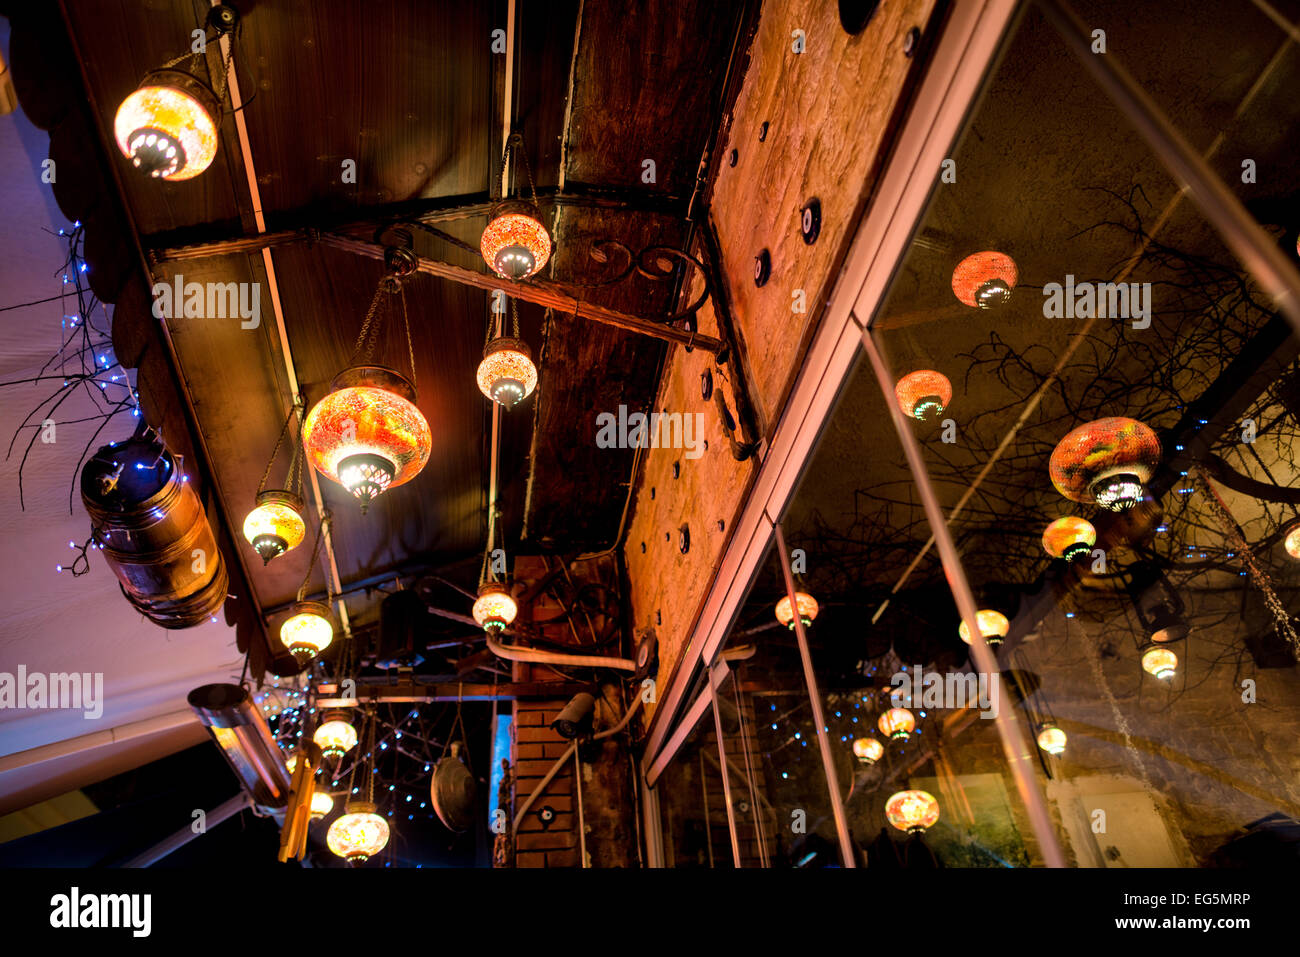 Colorful Turkish lights hang anove a restaurant in Istanbul, Turkey. - Stock Image